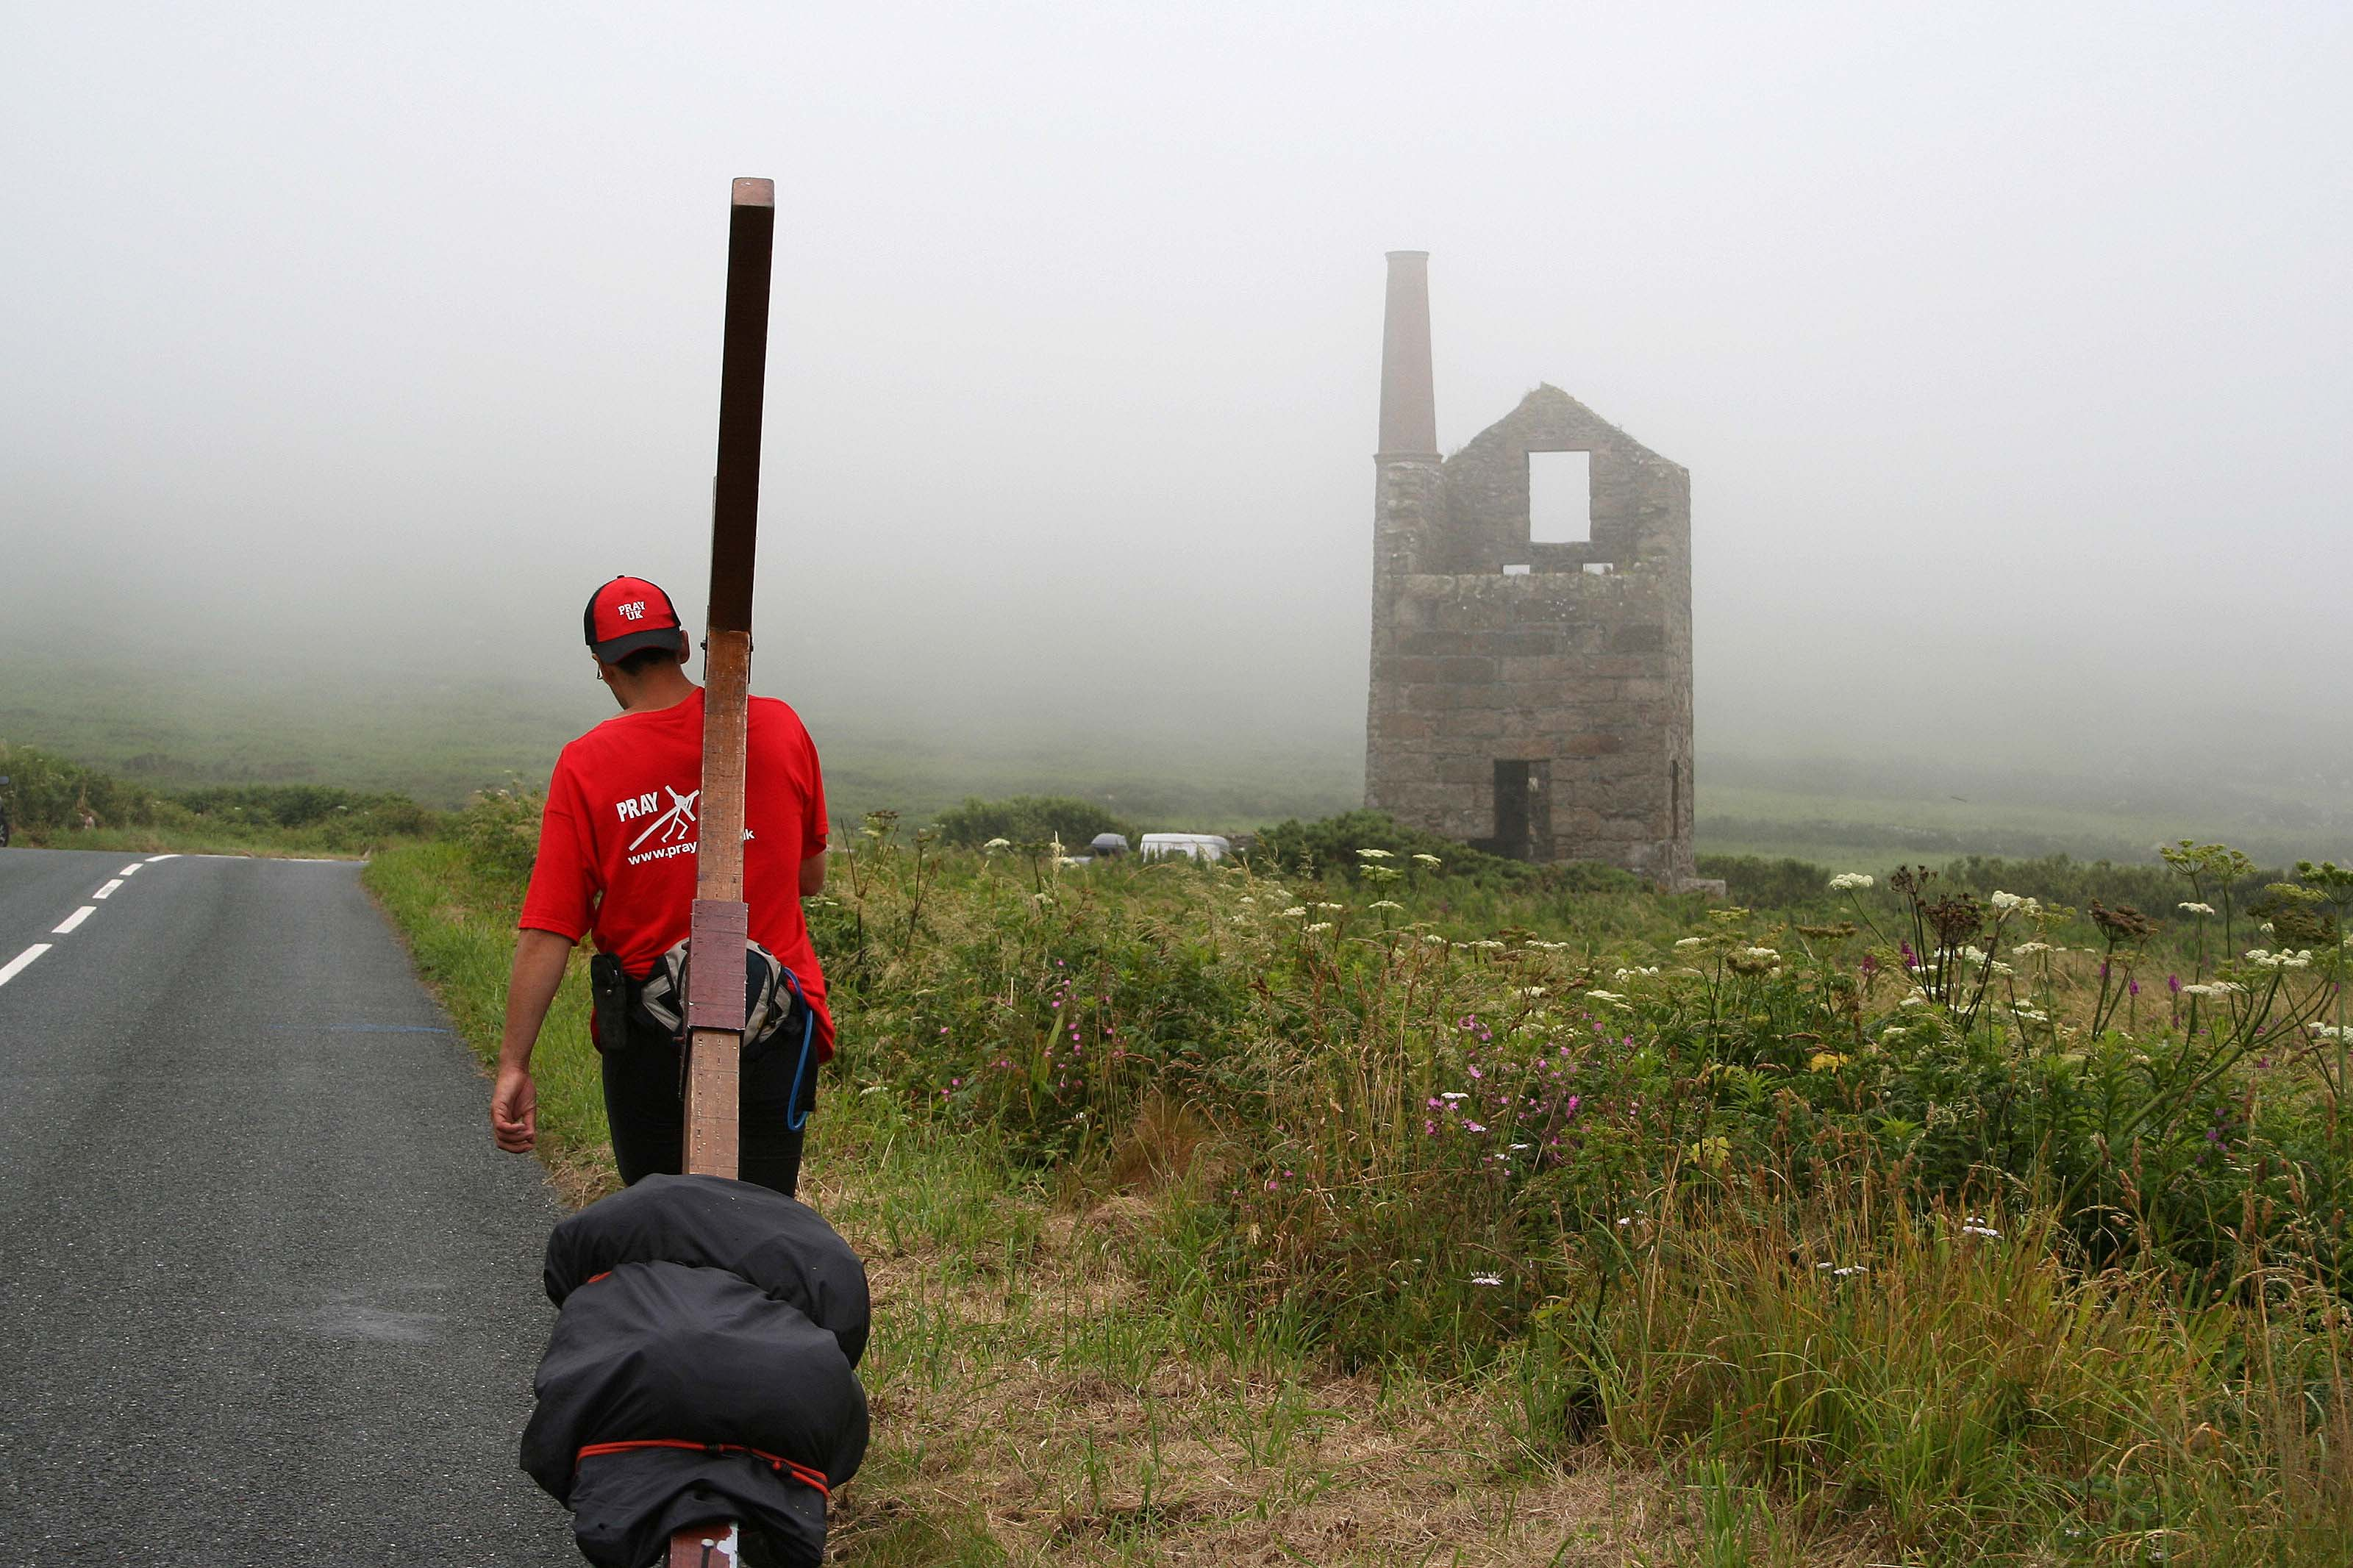 Counties evangelist walks with his cross towards a ruined tin mine in Cornwell - the tin mine looms out of the mist